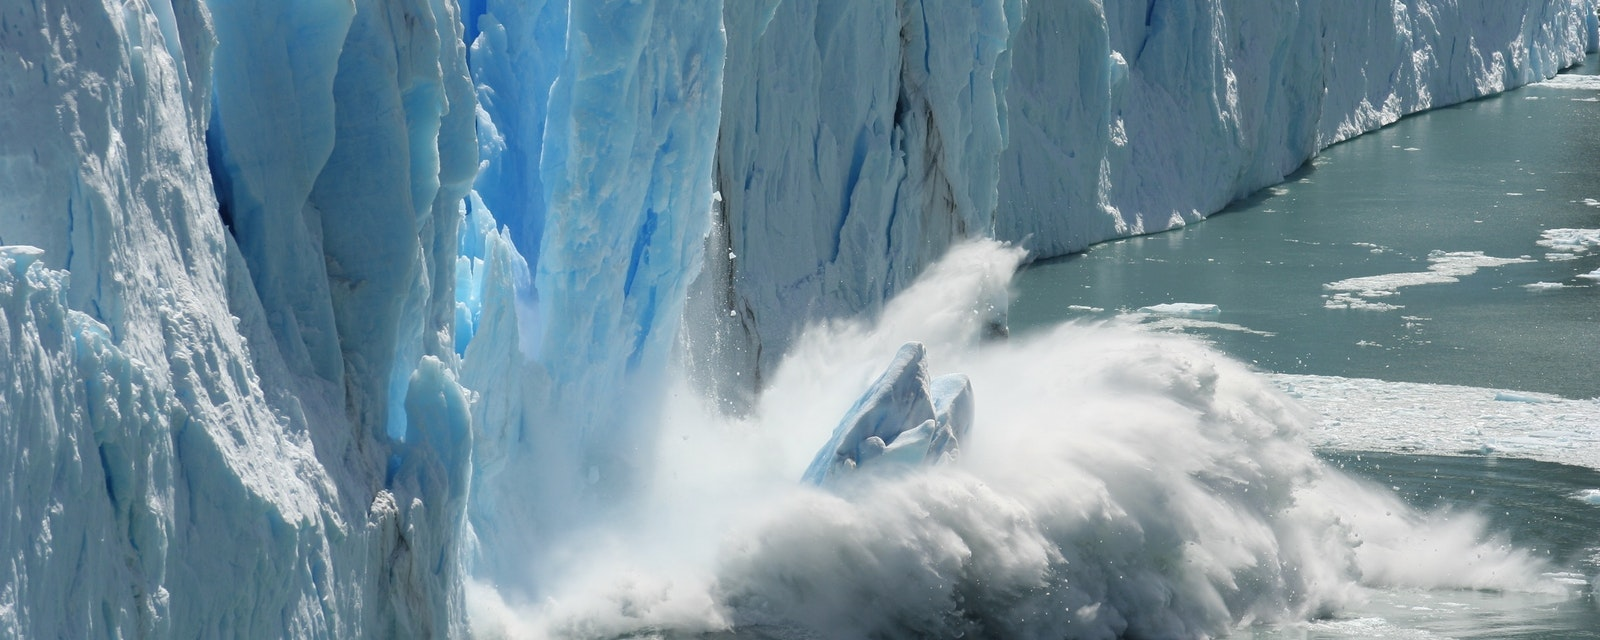 Climate,Change,-,Antarctic,Melting,Glacier,In,A,Global,Warming